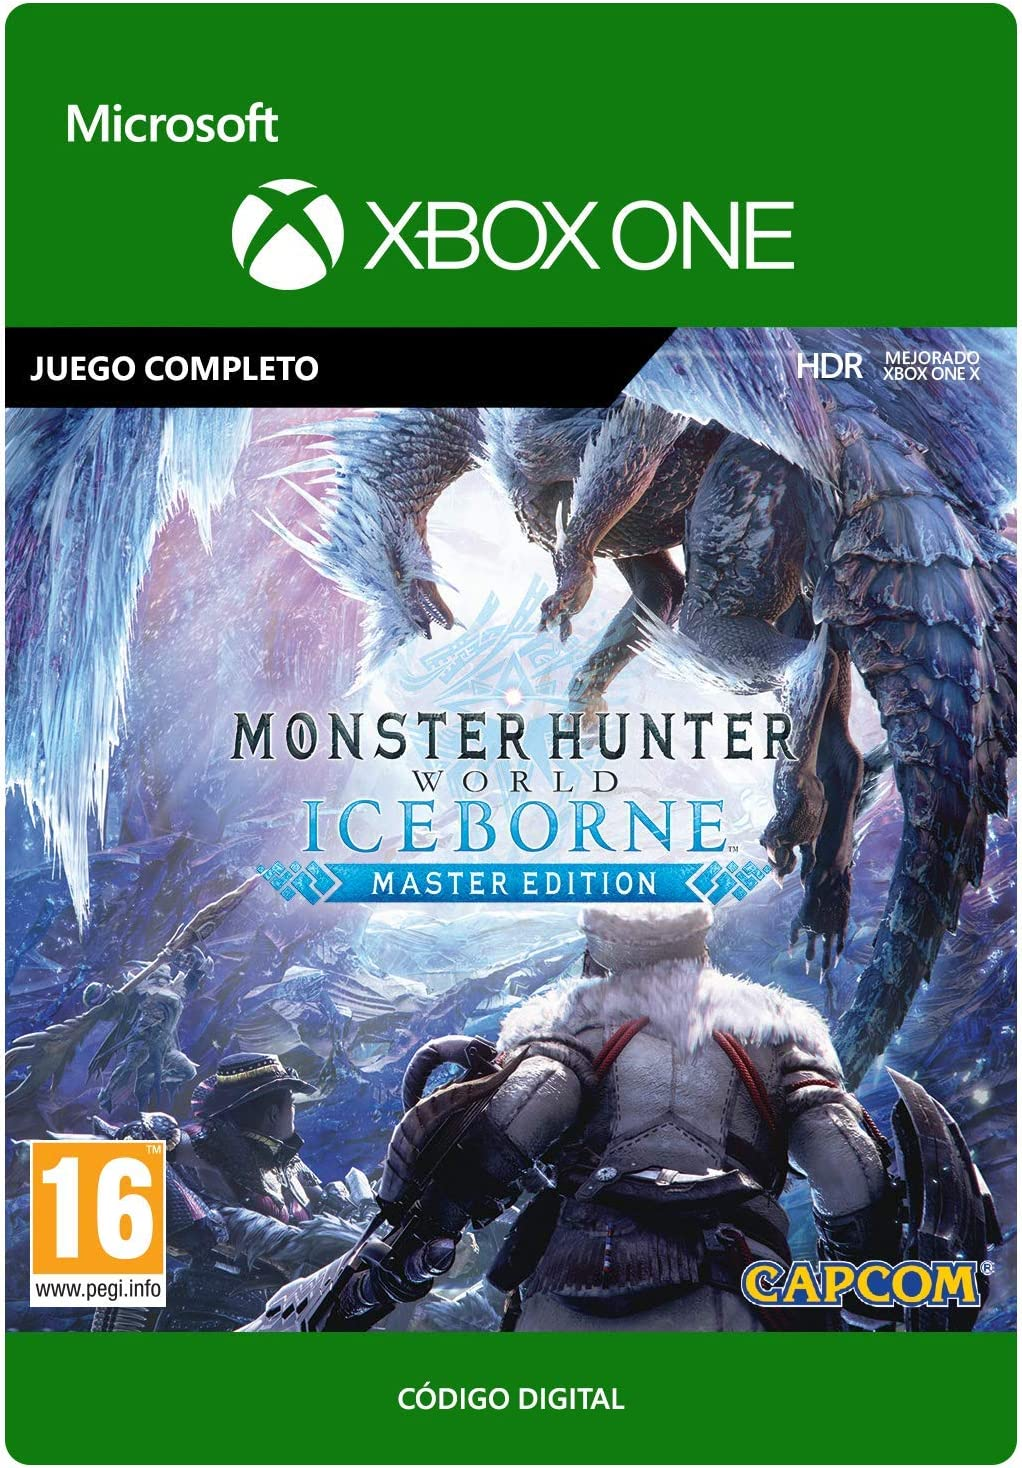 Monster Hunter World: Iceborne - Master Edition - Xbox One: Amazon.es: Videojuegos